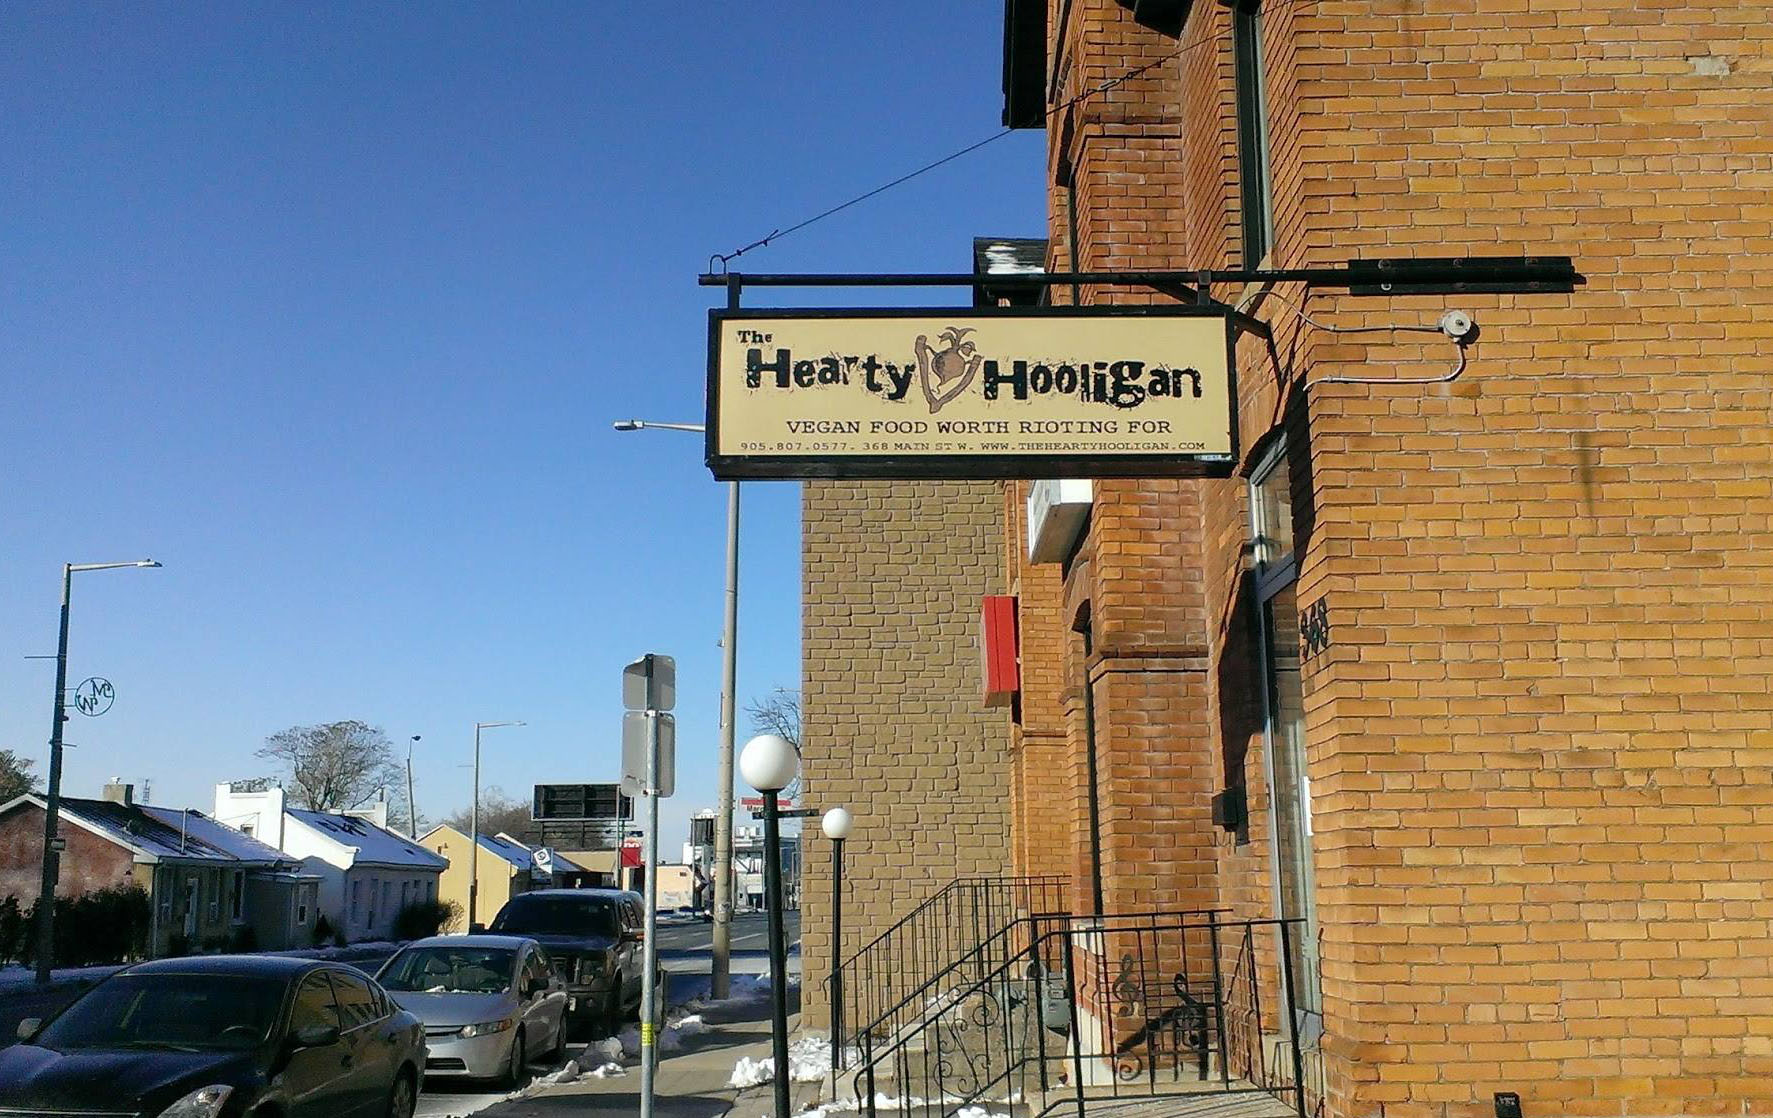 Delicious vegan junk food restaurant plans to open on corner of Locke and Main Street  The Hearty Hooligan specializes in serving vegan cakes, pizza, cookies, peanut butter cups and other comfort food favourites